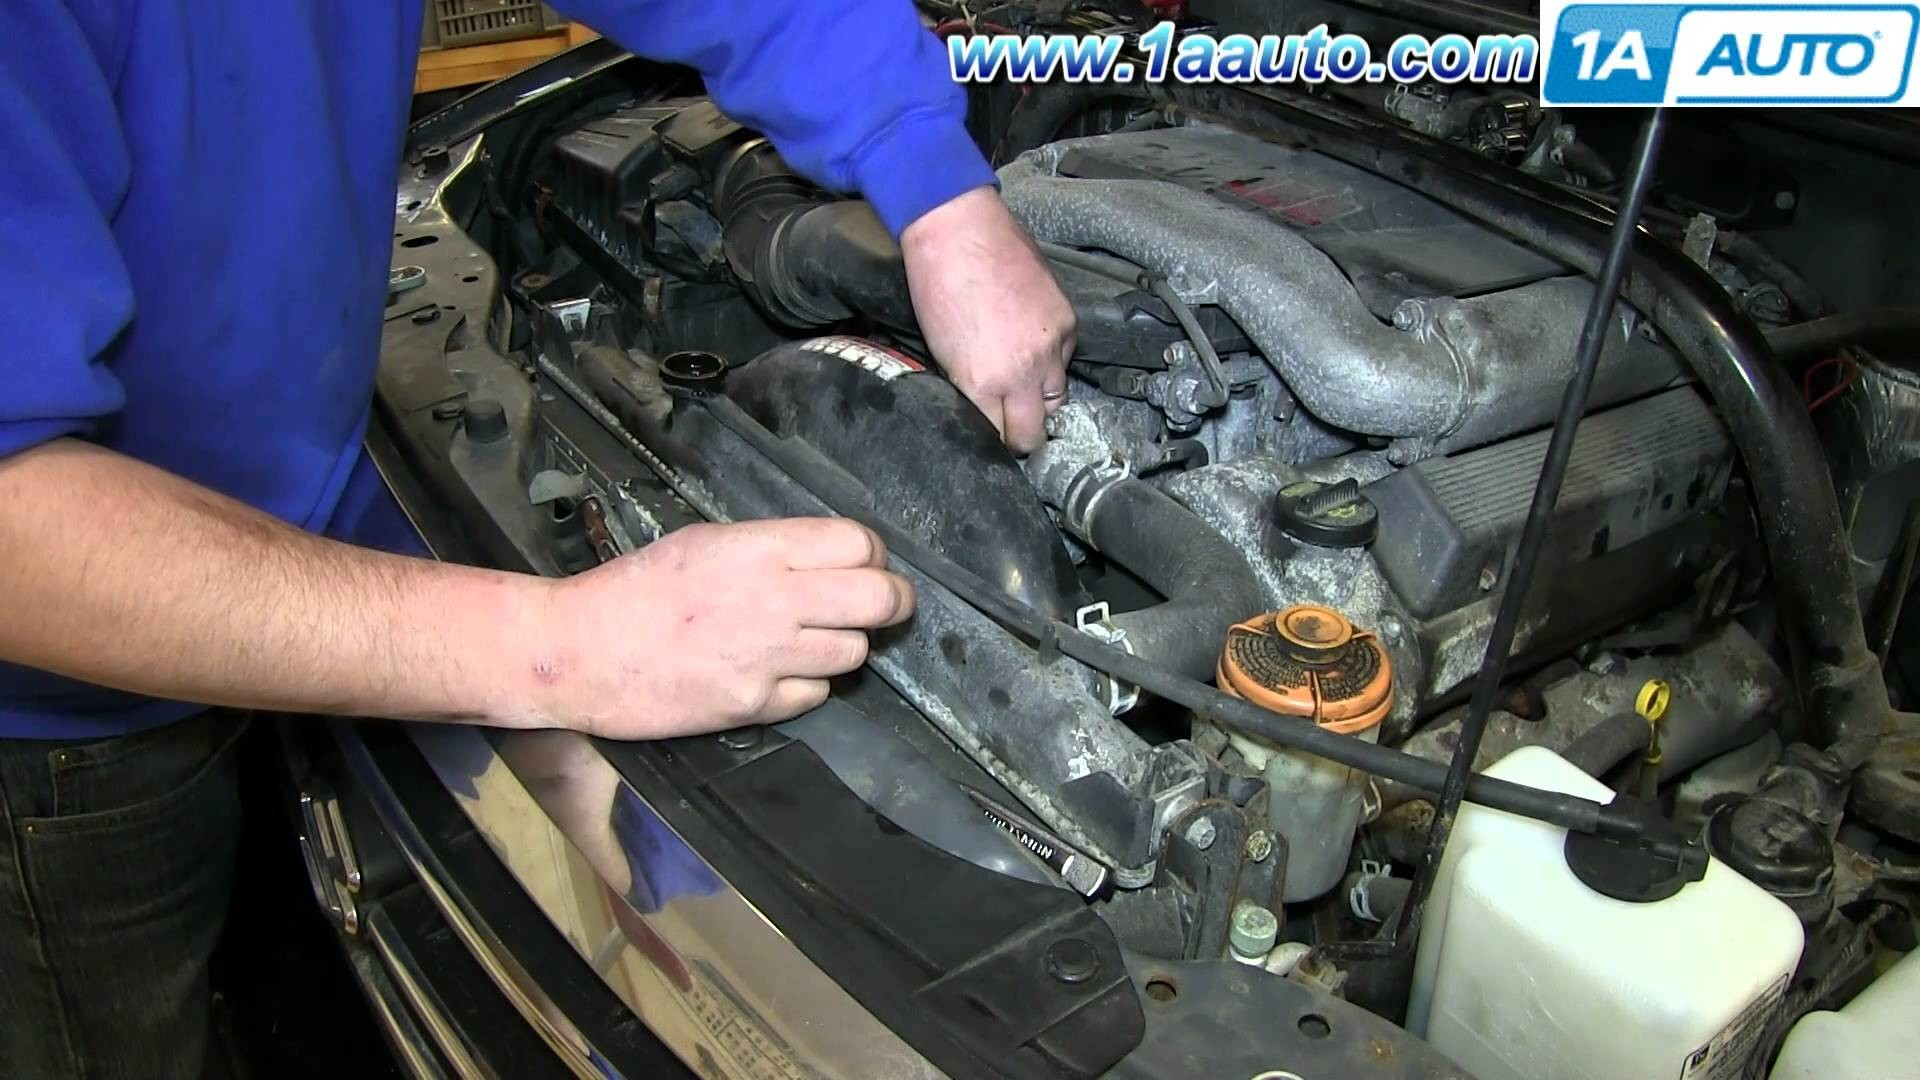 2004 Suzuki Verona Engine Diagram How to Install Replace Engine ...